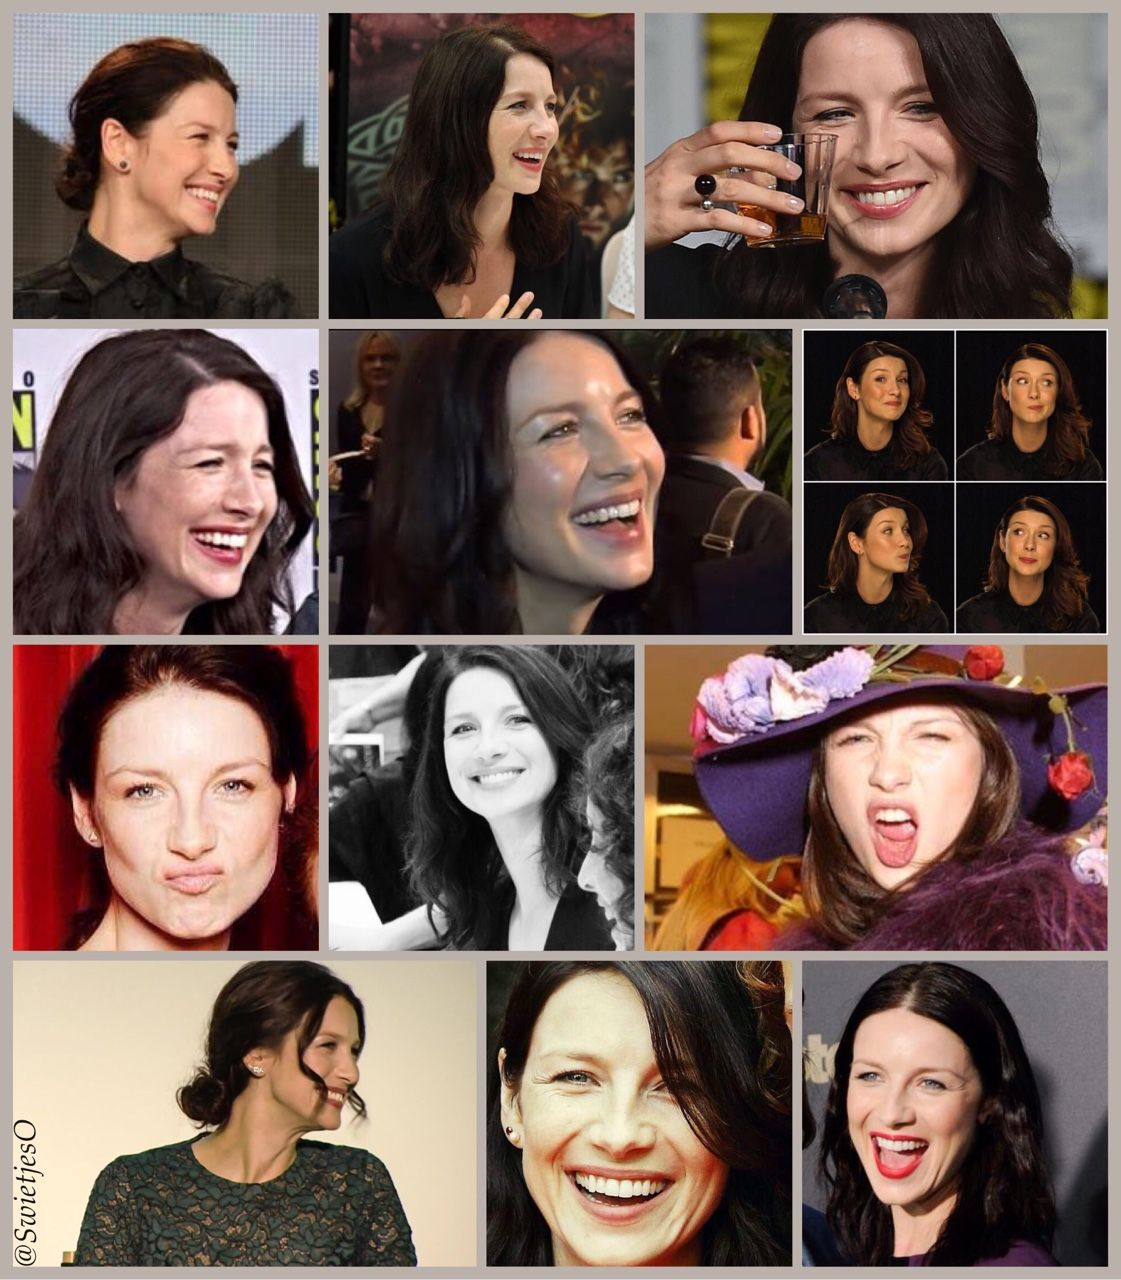 Swietjes Outlander — She just looks like so much fun! And she is...